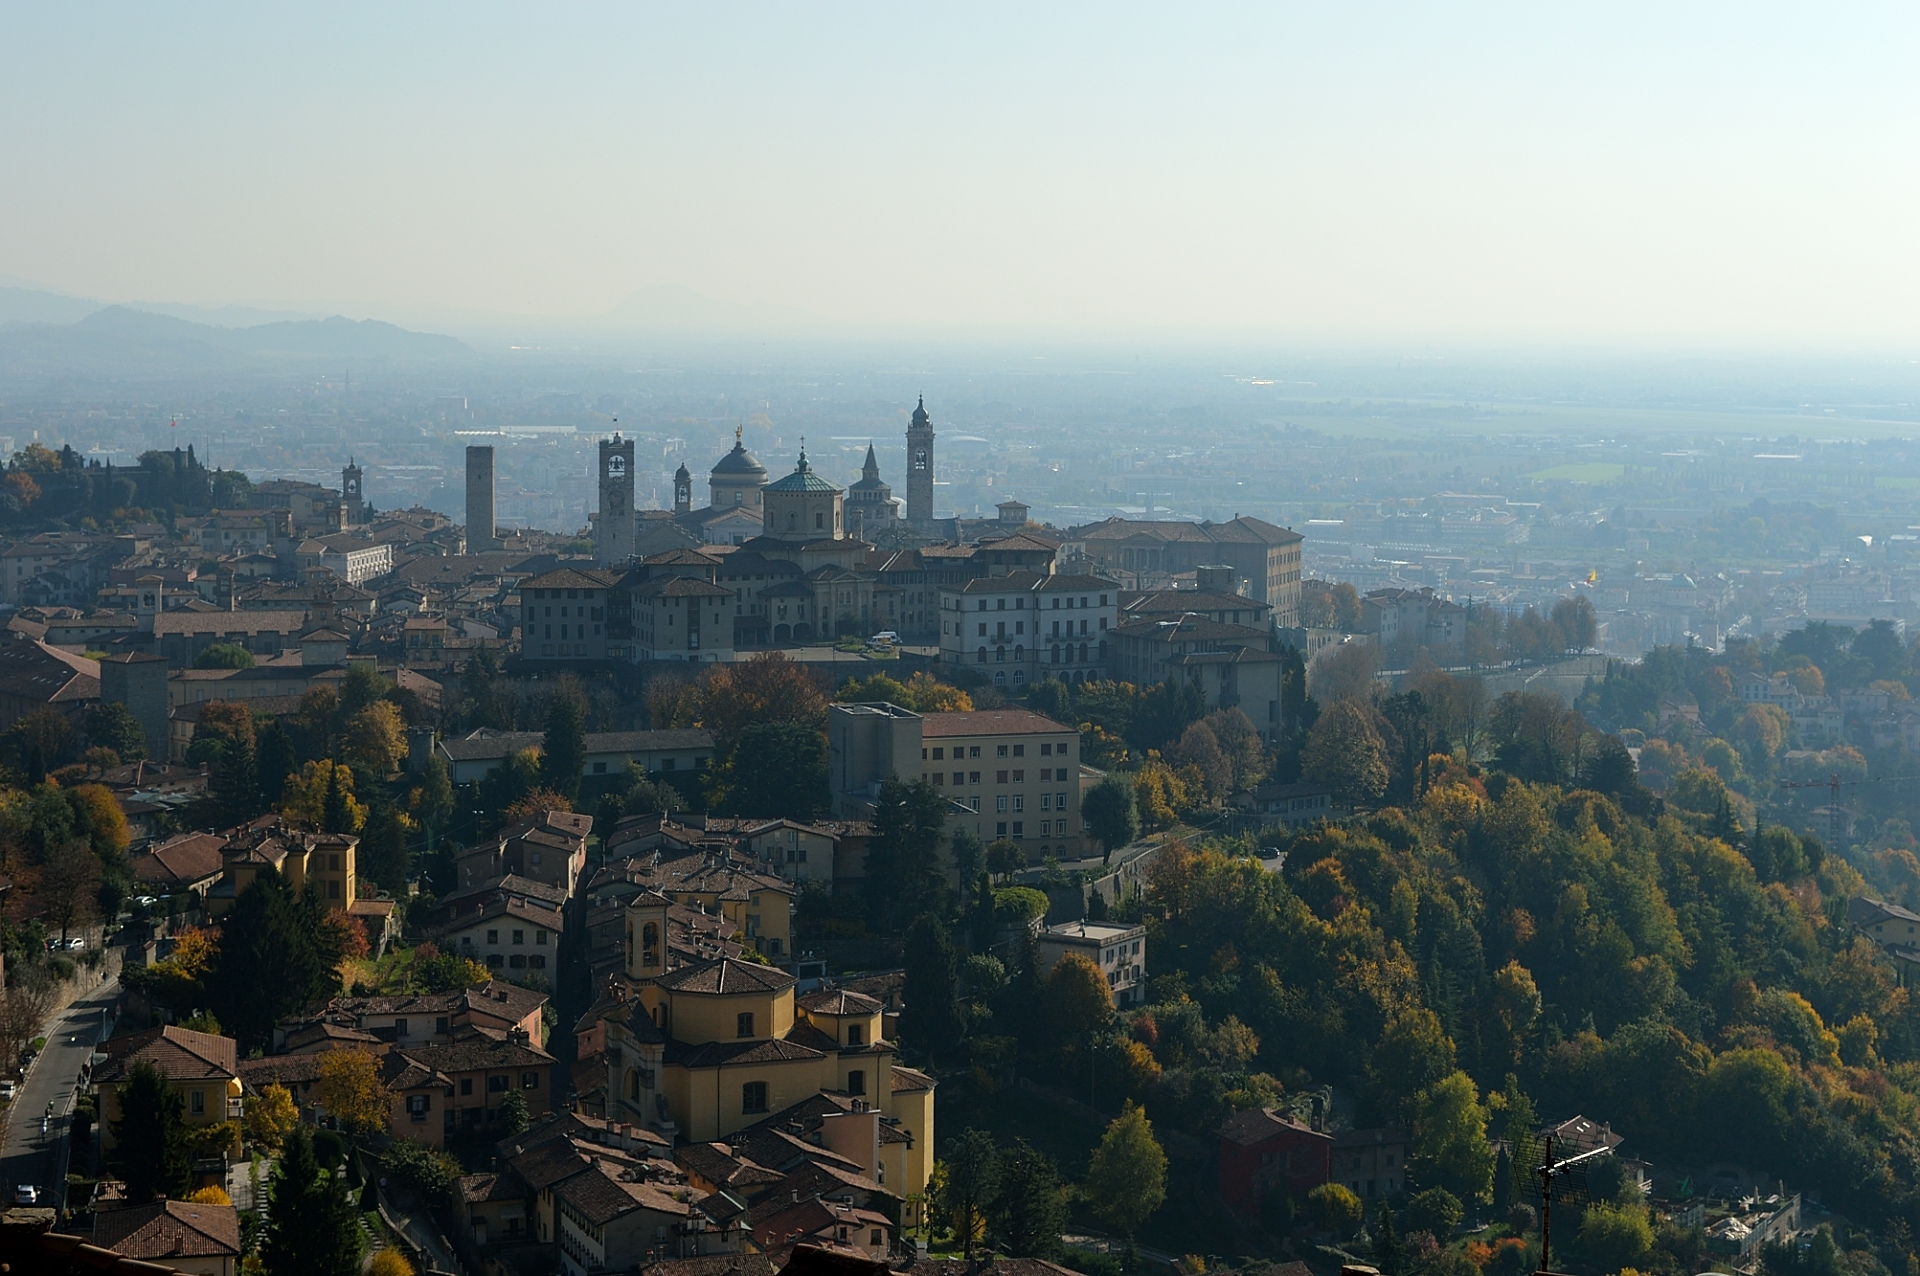 Weekend in Bergamo. A charming place full of history